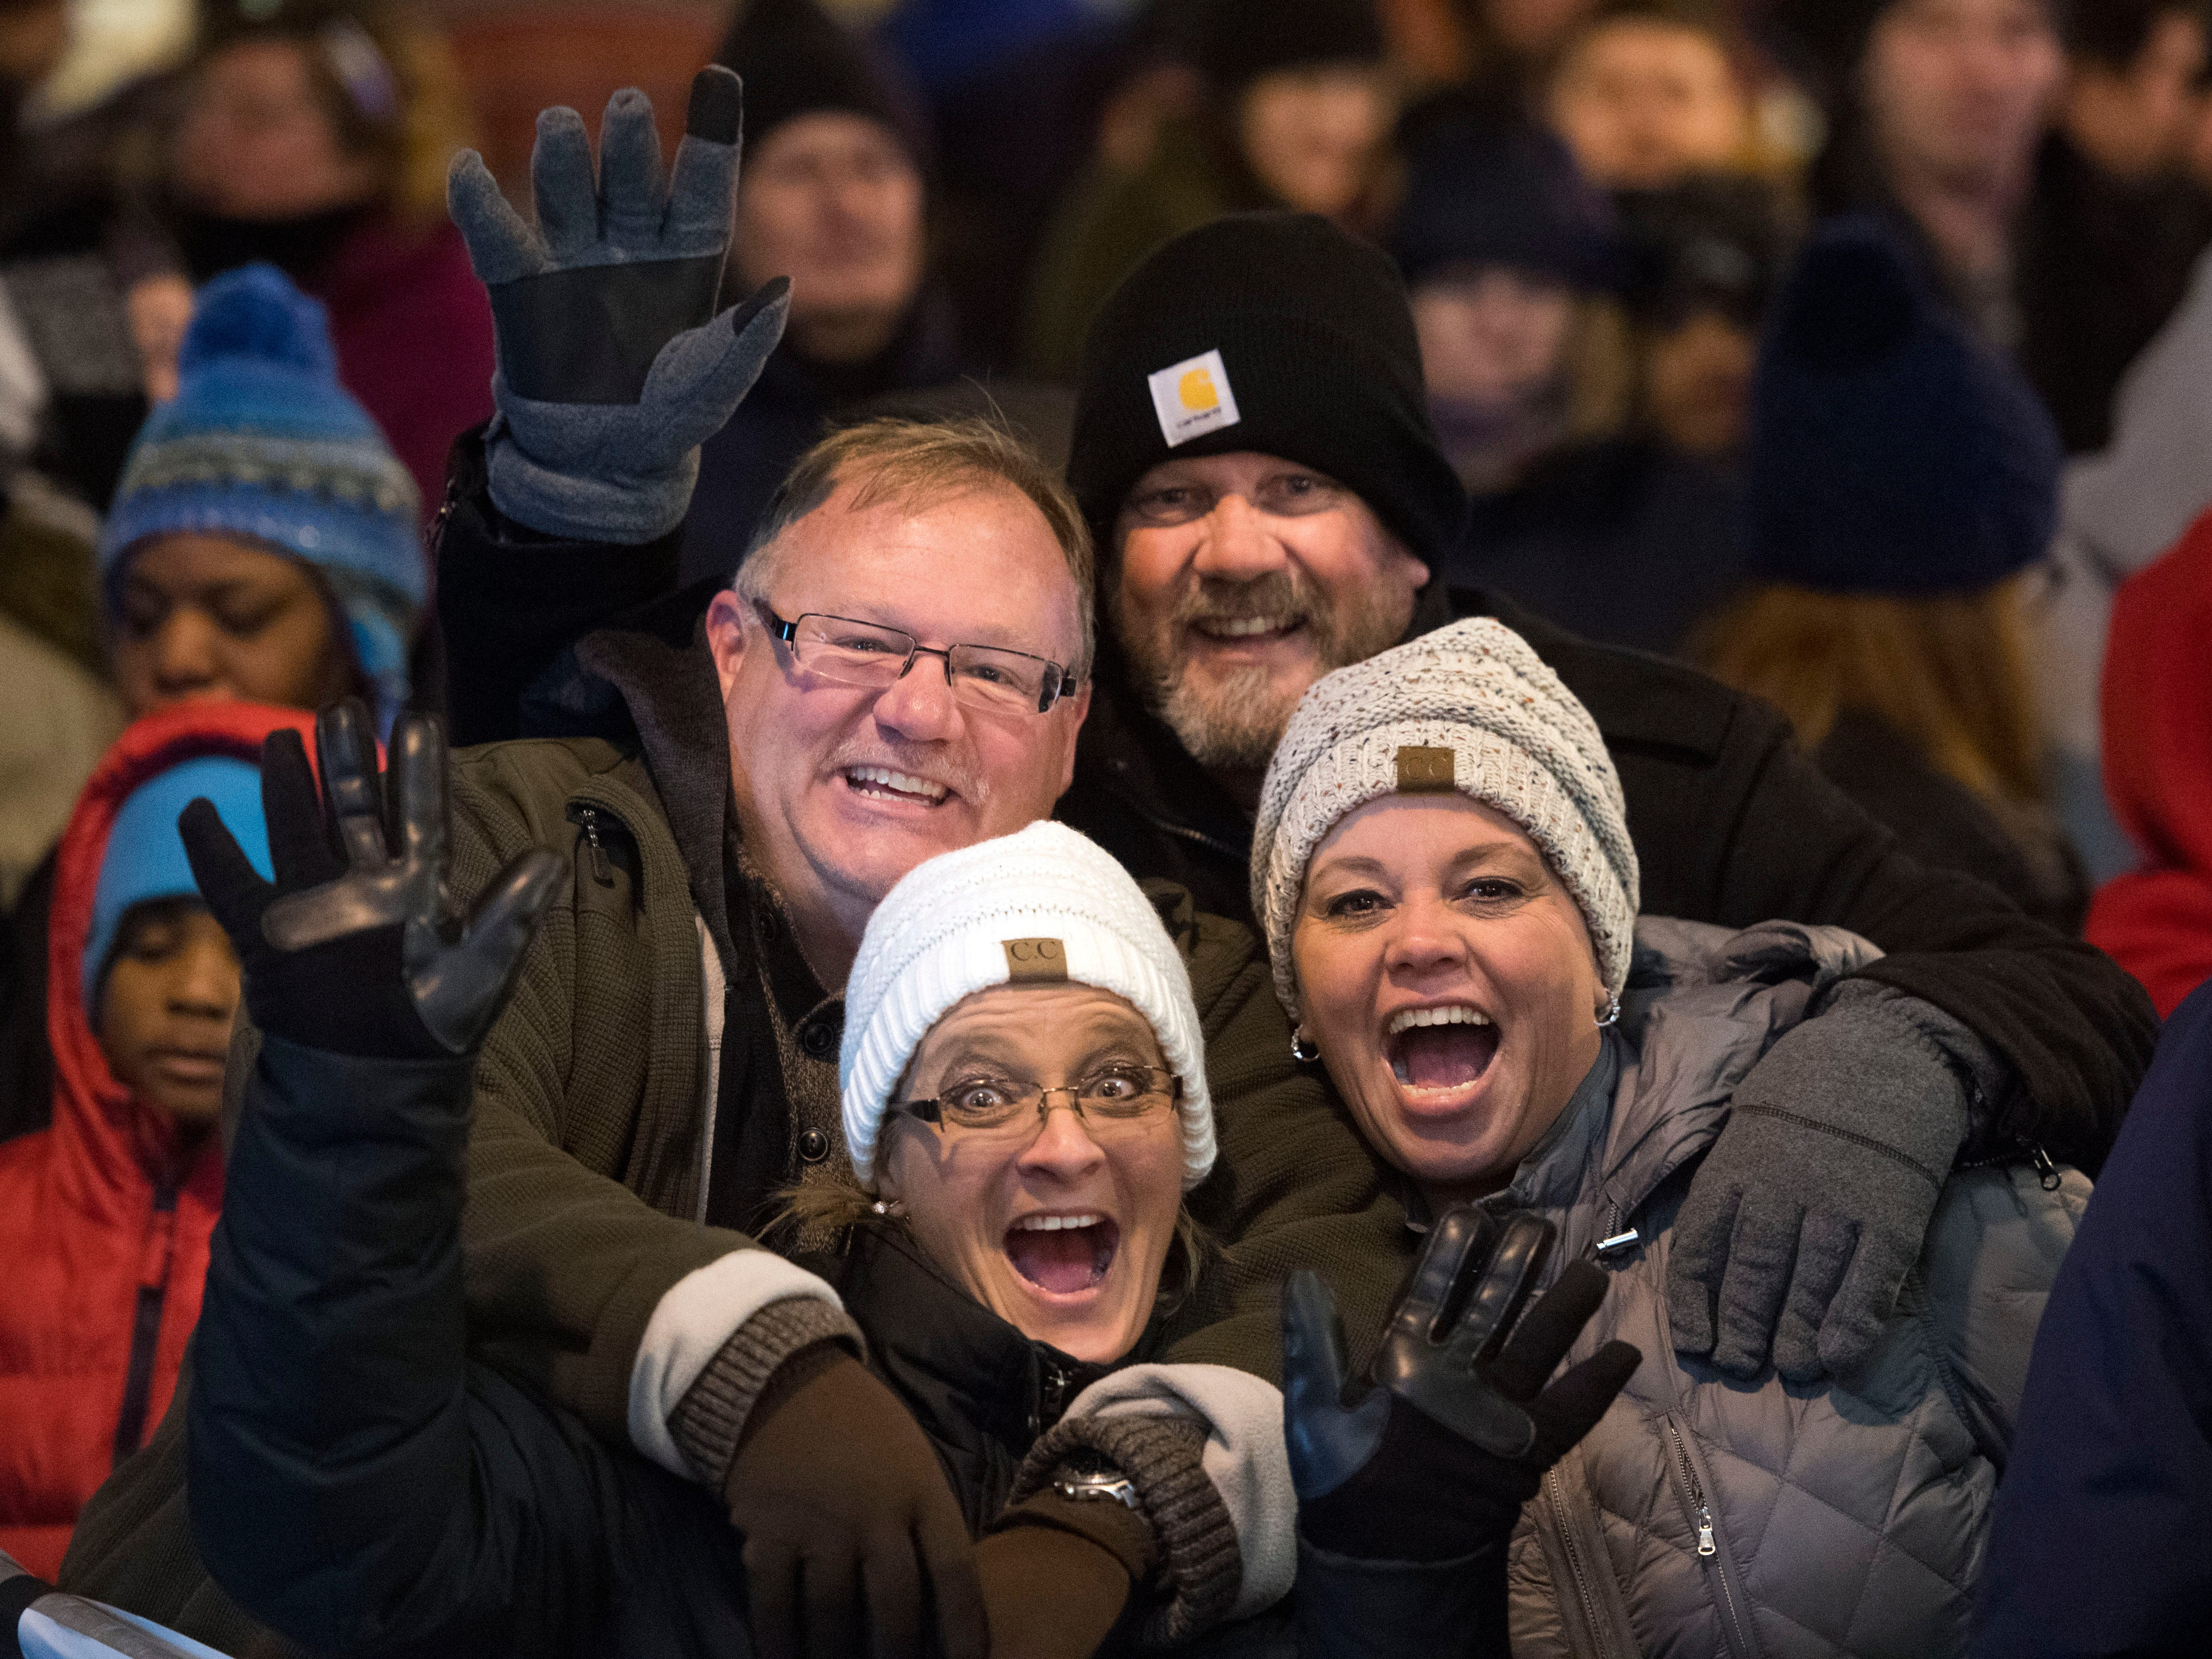 New Year's Eve celebrants Kenny and Kristi Long, left, and Jeff and Angie Brown discover a camera is pointed at them while they celebrate at Market Square on Sunday, December 31, 2017.